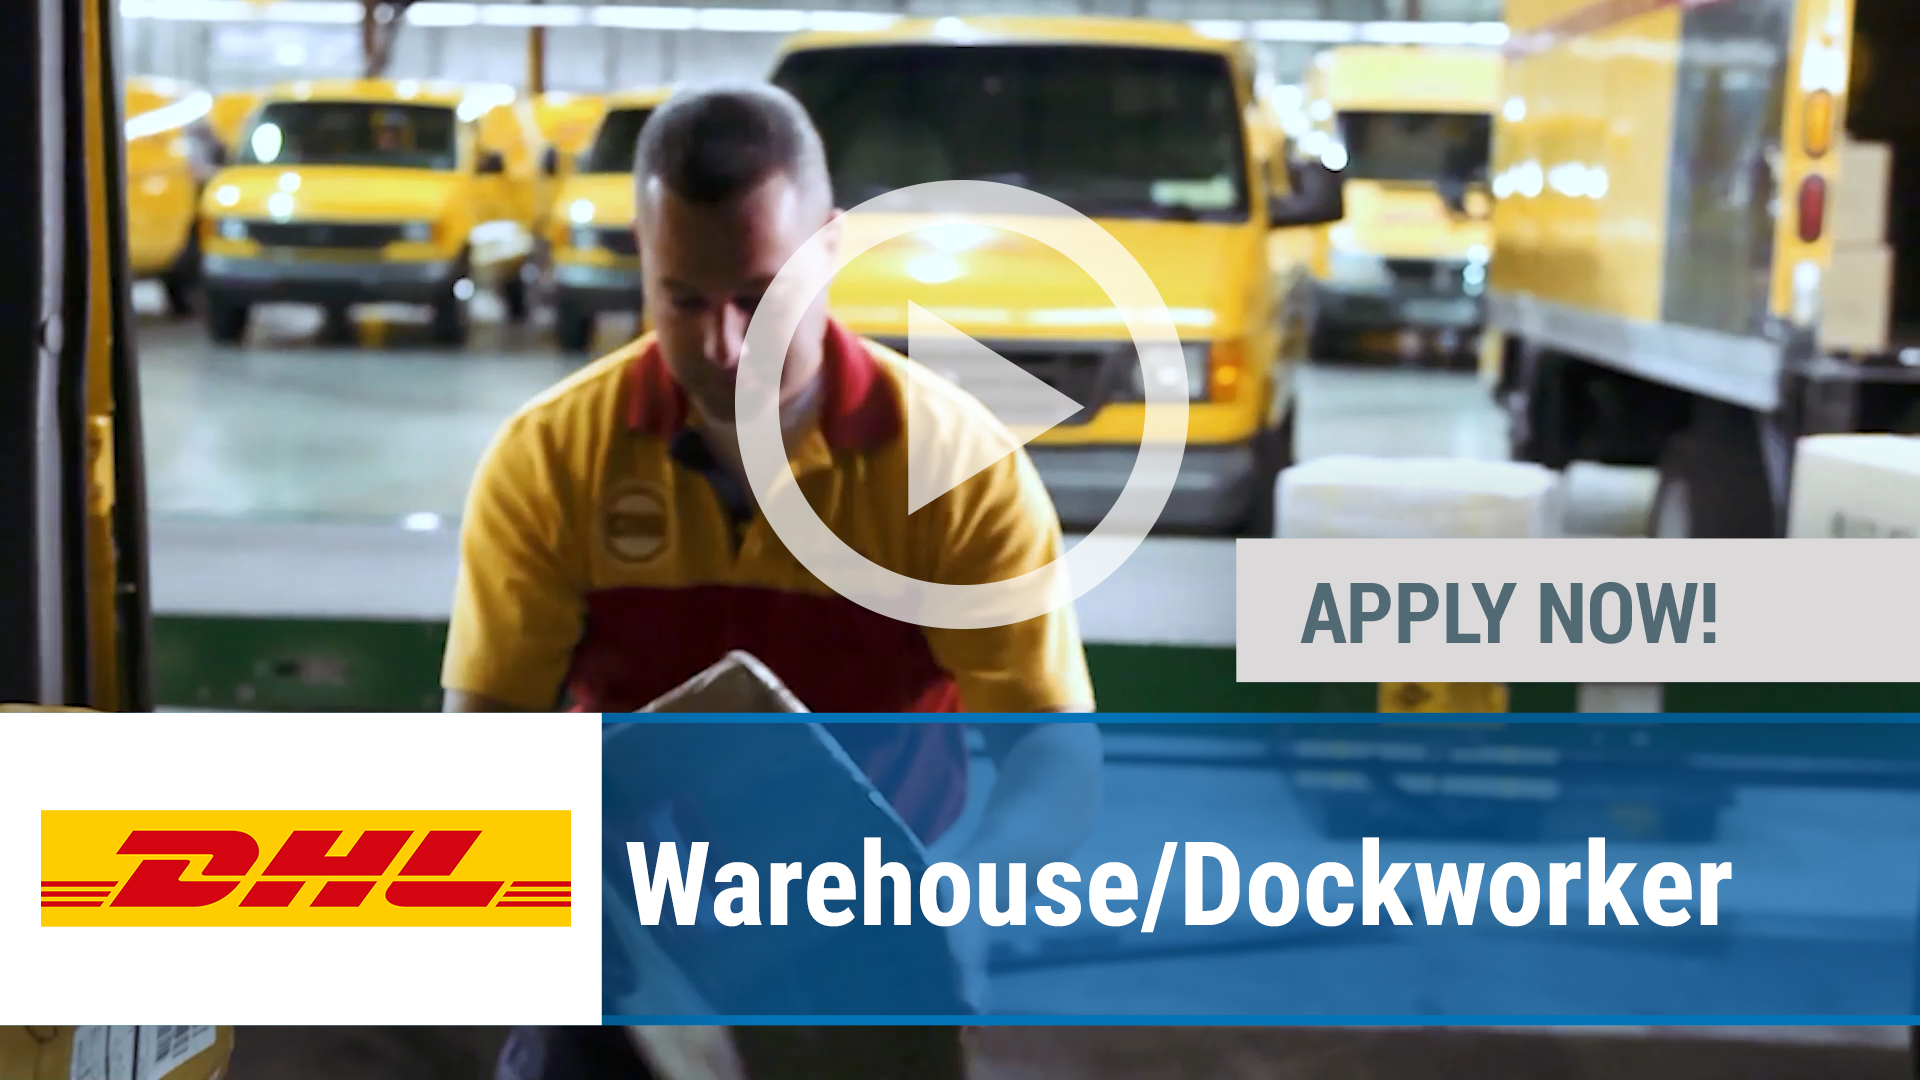 Watch our careers video for available job opening Warehouse_Dockworker in Westborough, MA, USA